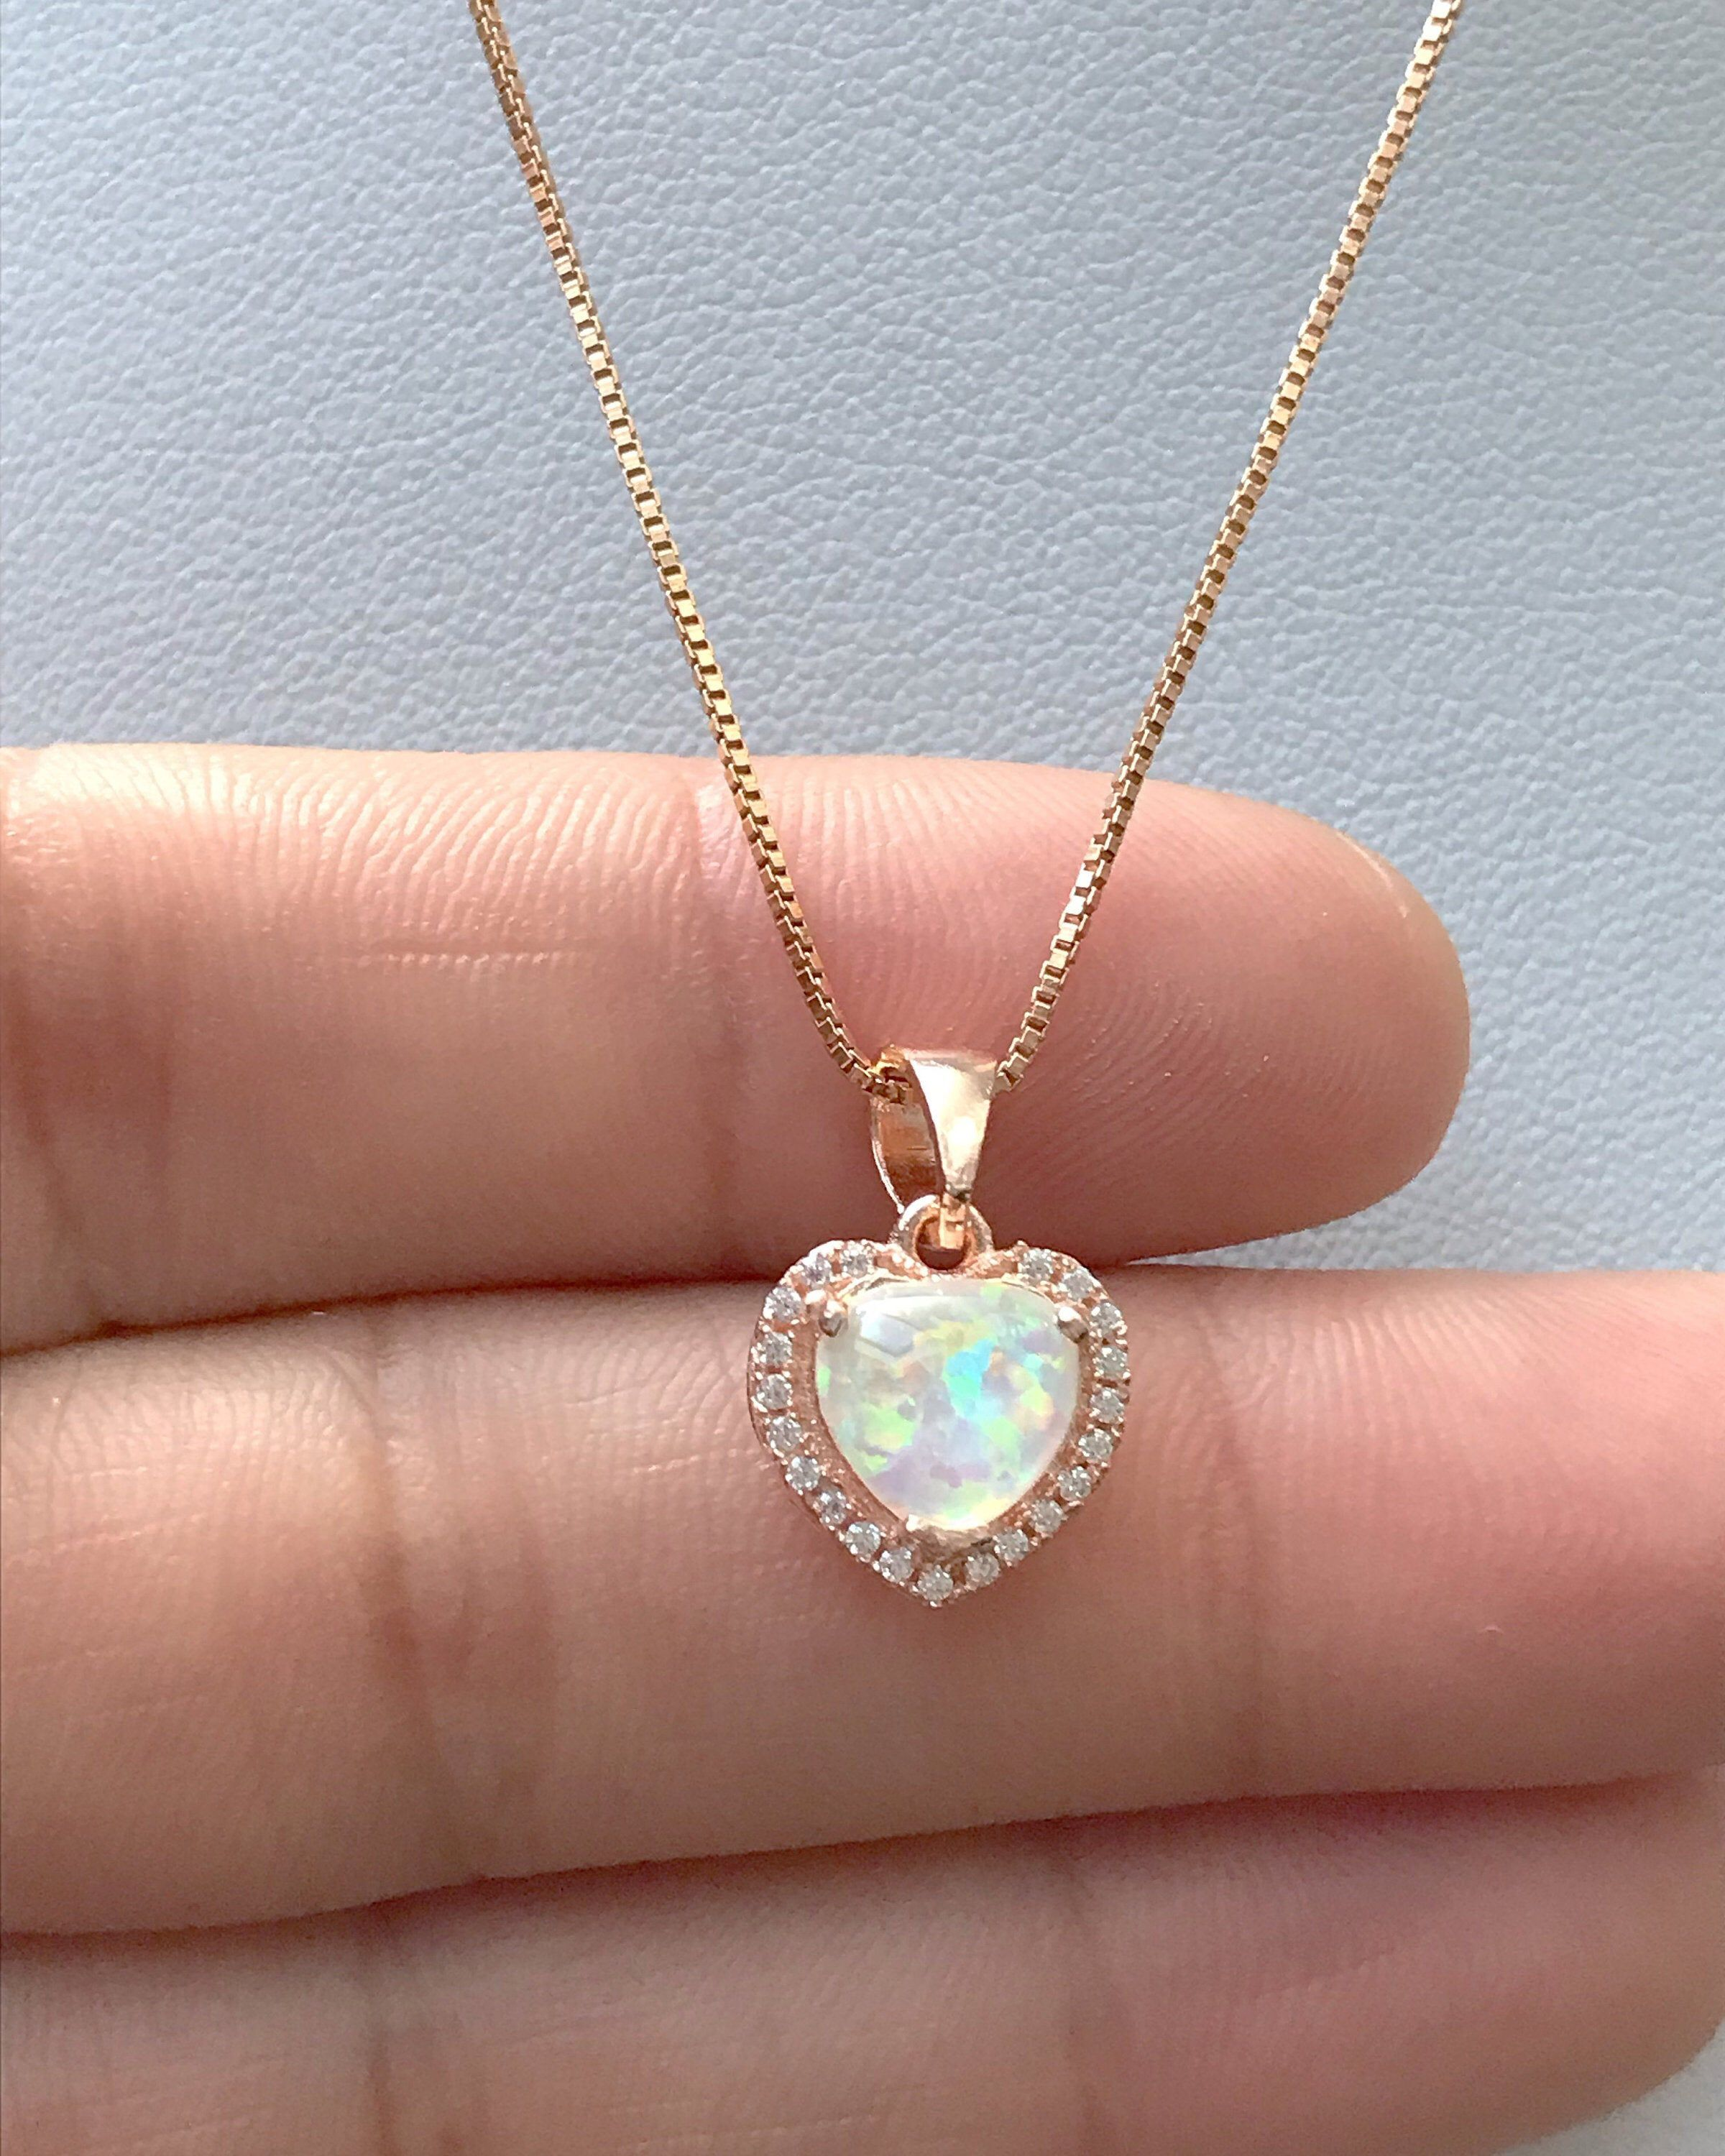 Diamond /& Opal Pendant Necklace In Yellow Gold Plated Silver .925 October Birthstone